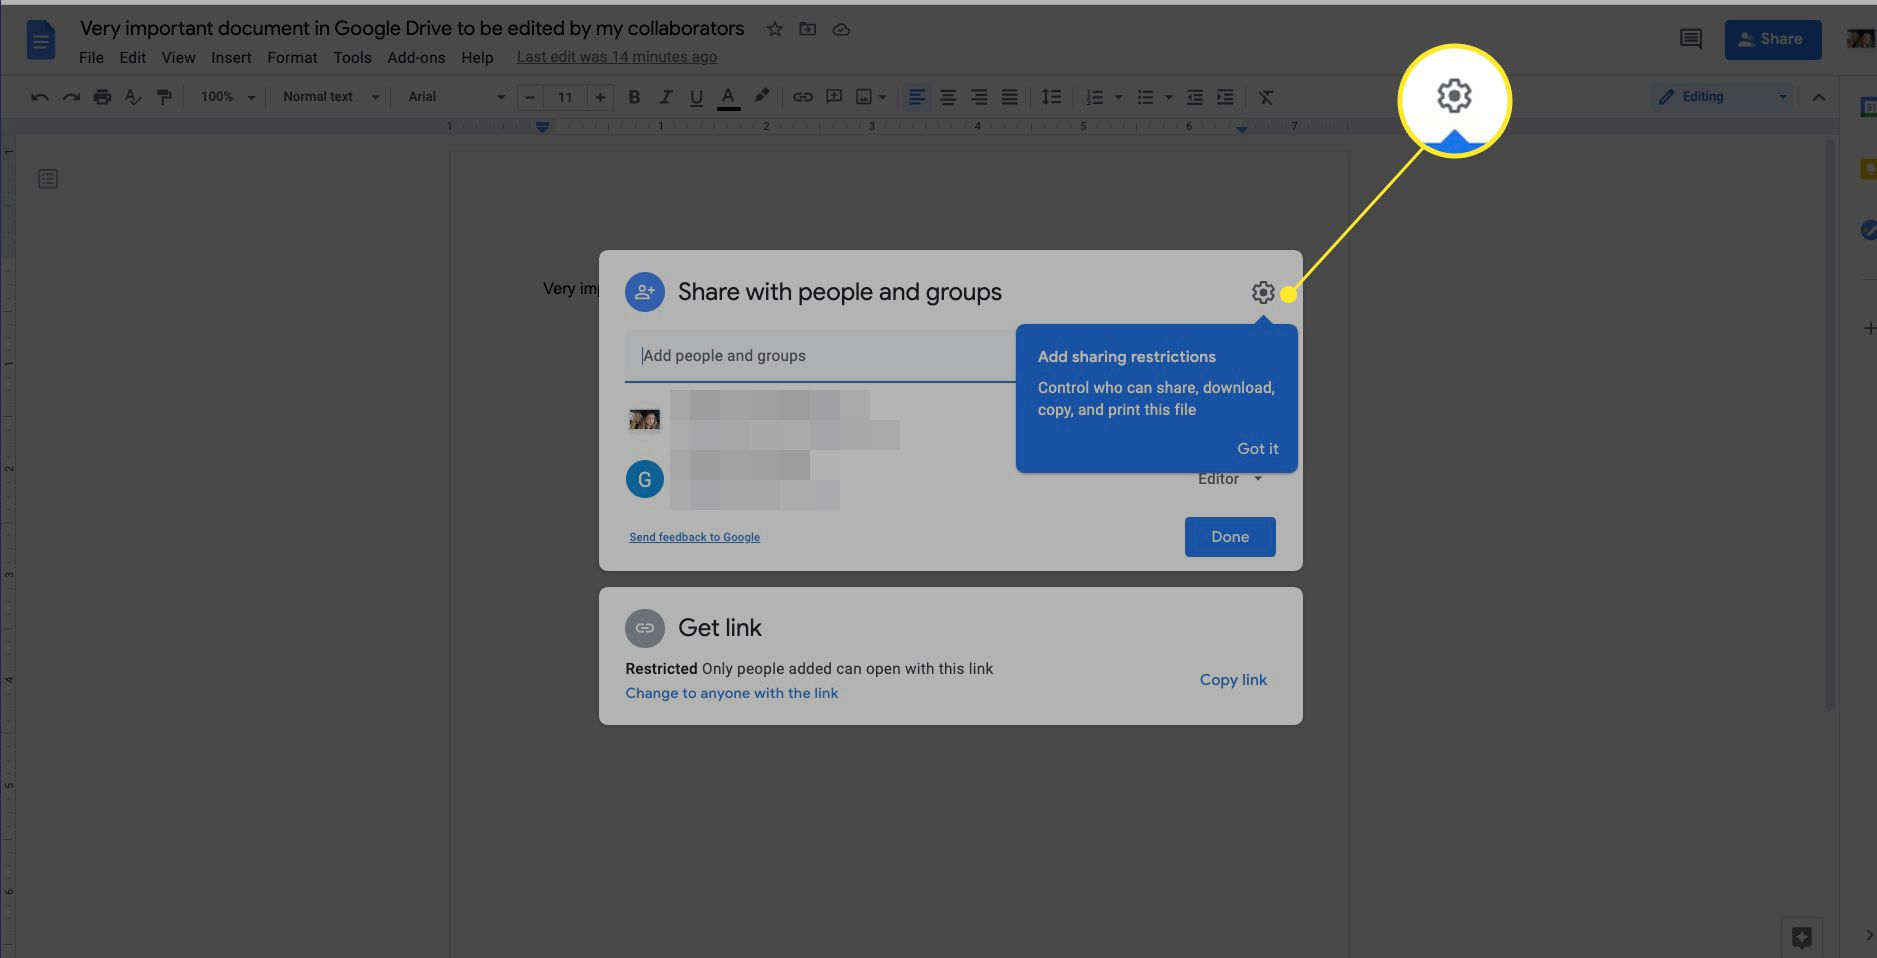 Google Drive sharing restrictions Settings icon highlighted